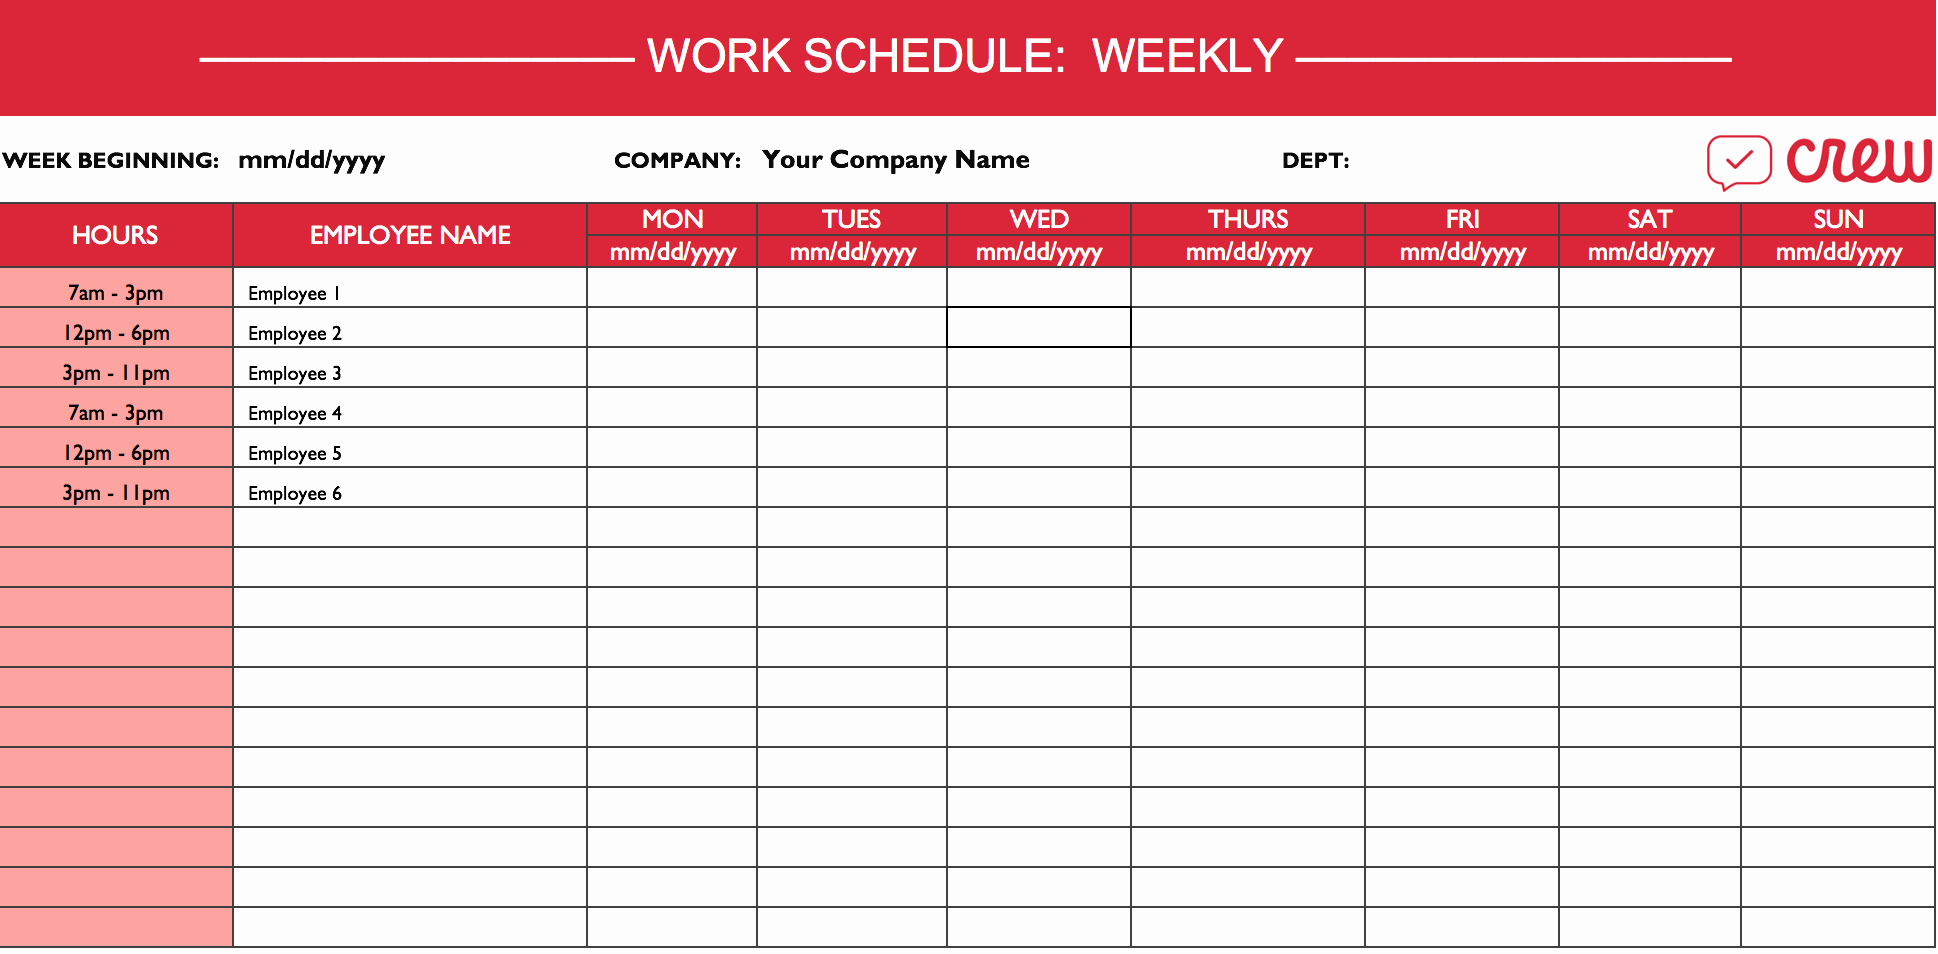 Weekly Work Schedule Template Excel Beautiful Weekly Work Schedule Template I Crew